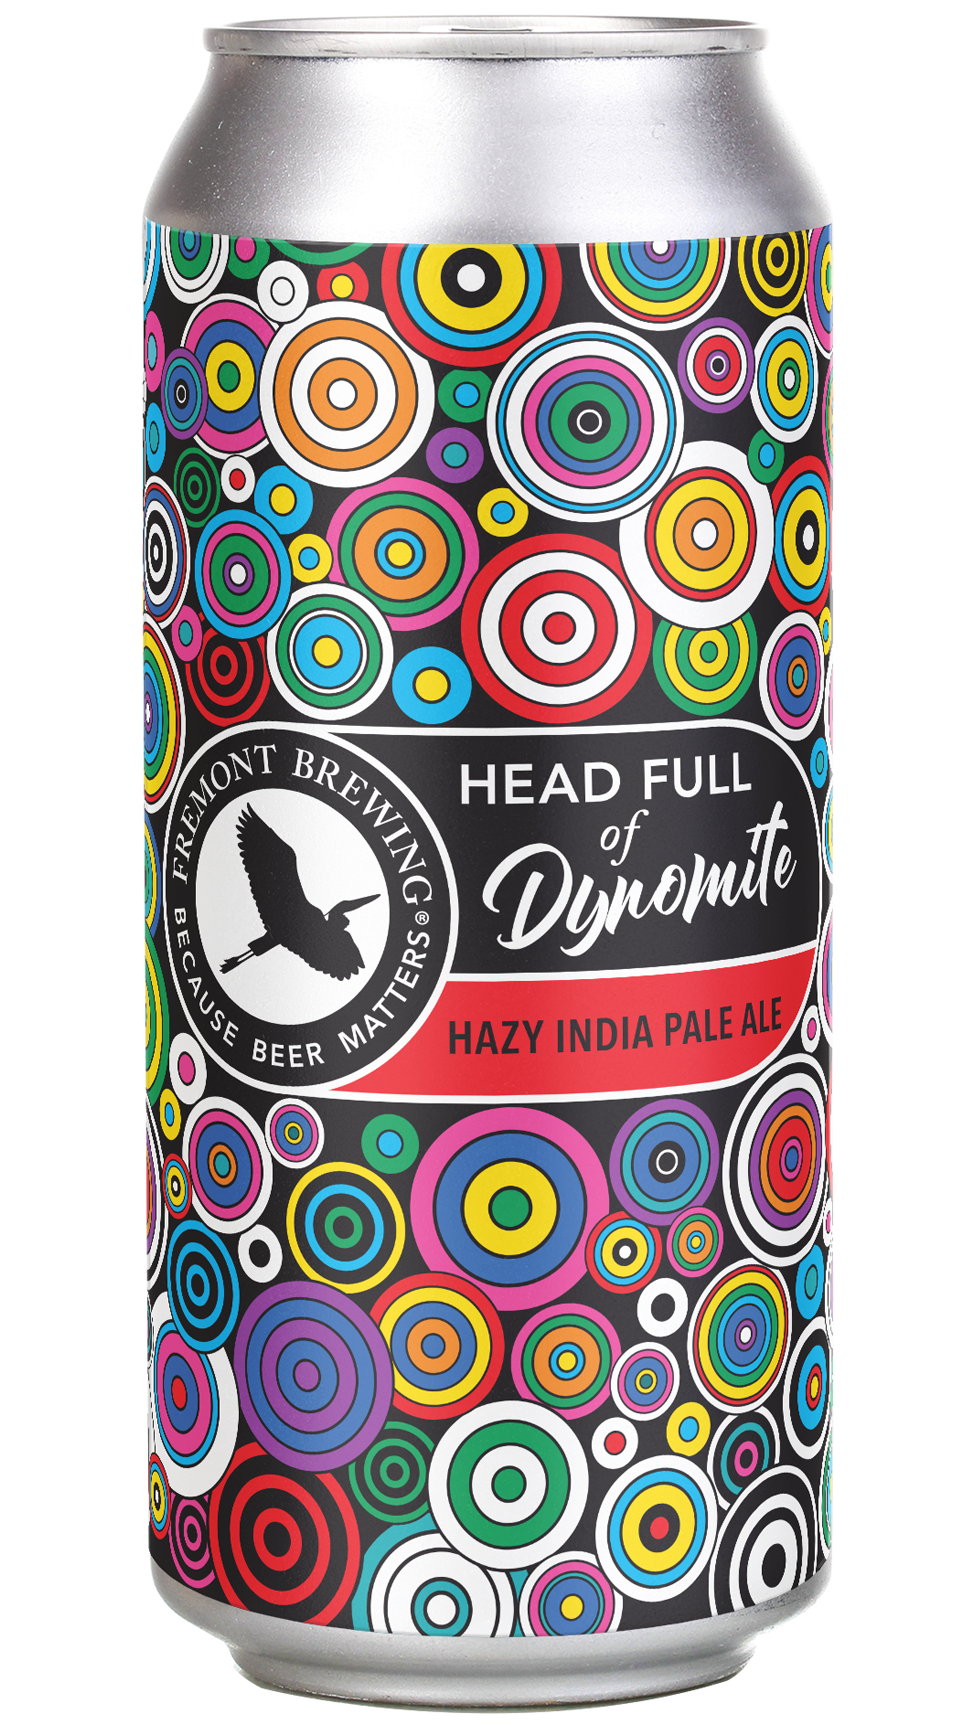 Fremont-Head-Full-of-Dynomite-16oz-can.png